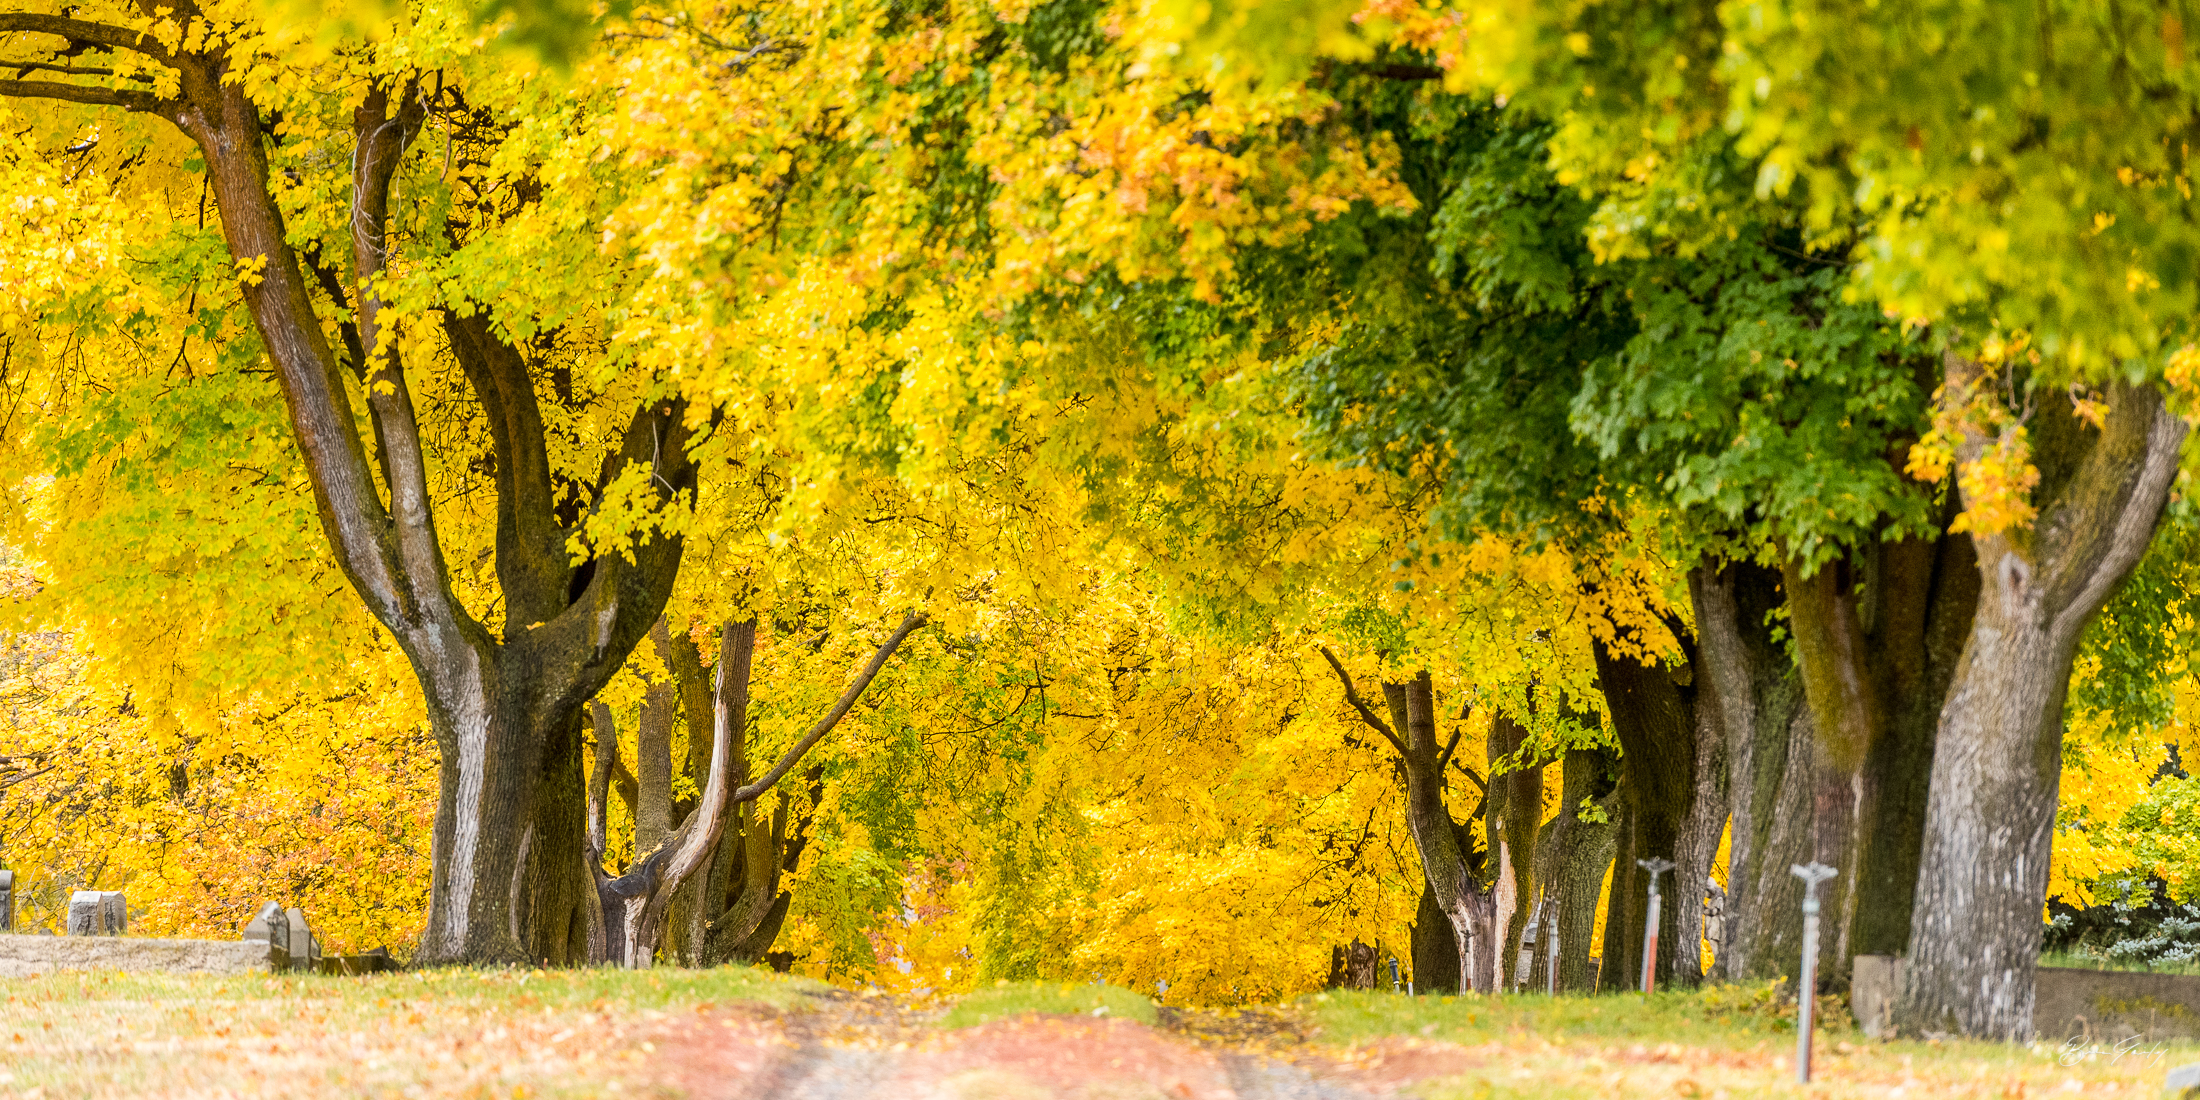 Fall Colors in the Linkvill Cemetery. Established in 1885, a walk through the Cemetery will bring to mind many pioneers of the Klamath Basin, including Melhase, Schallock, Biehn, Applegate, Gerber, Murdock, Baldwin and Summers to name a few. (Klamath Co. Historical Society) Image: Brian Gailey